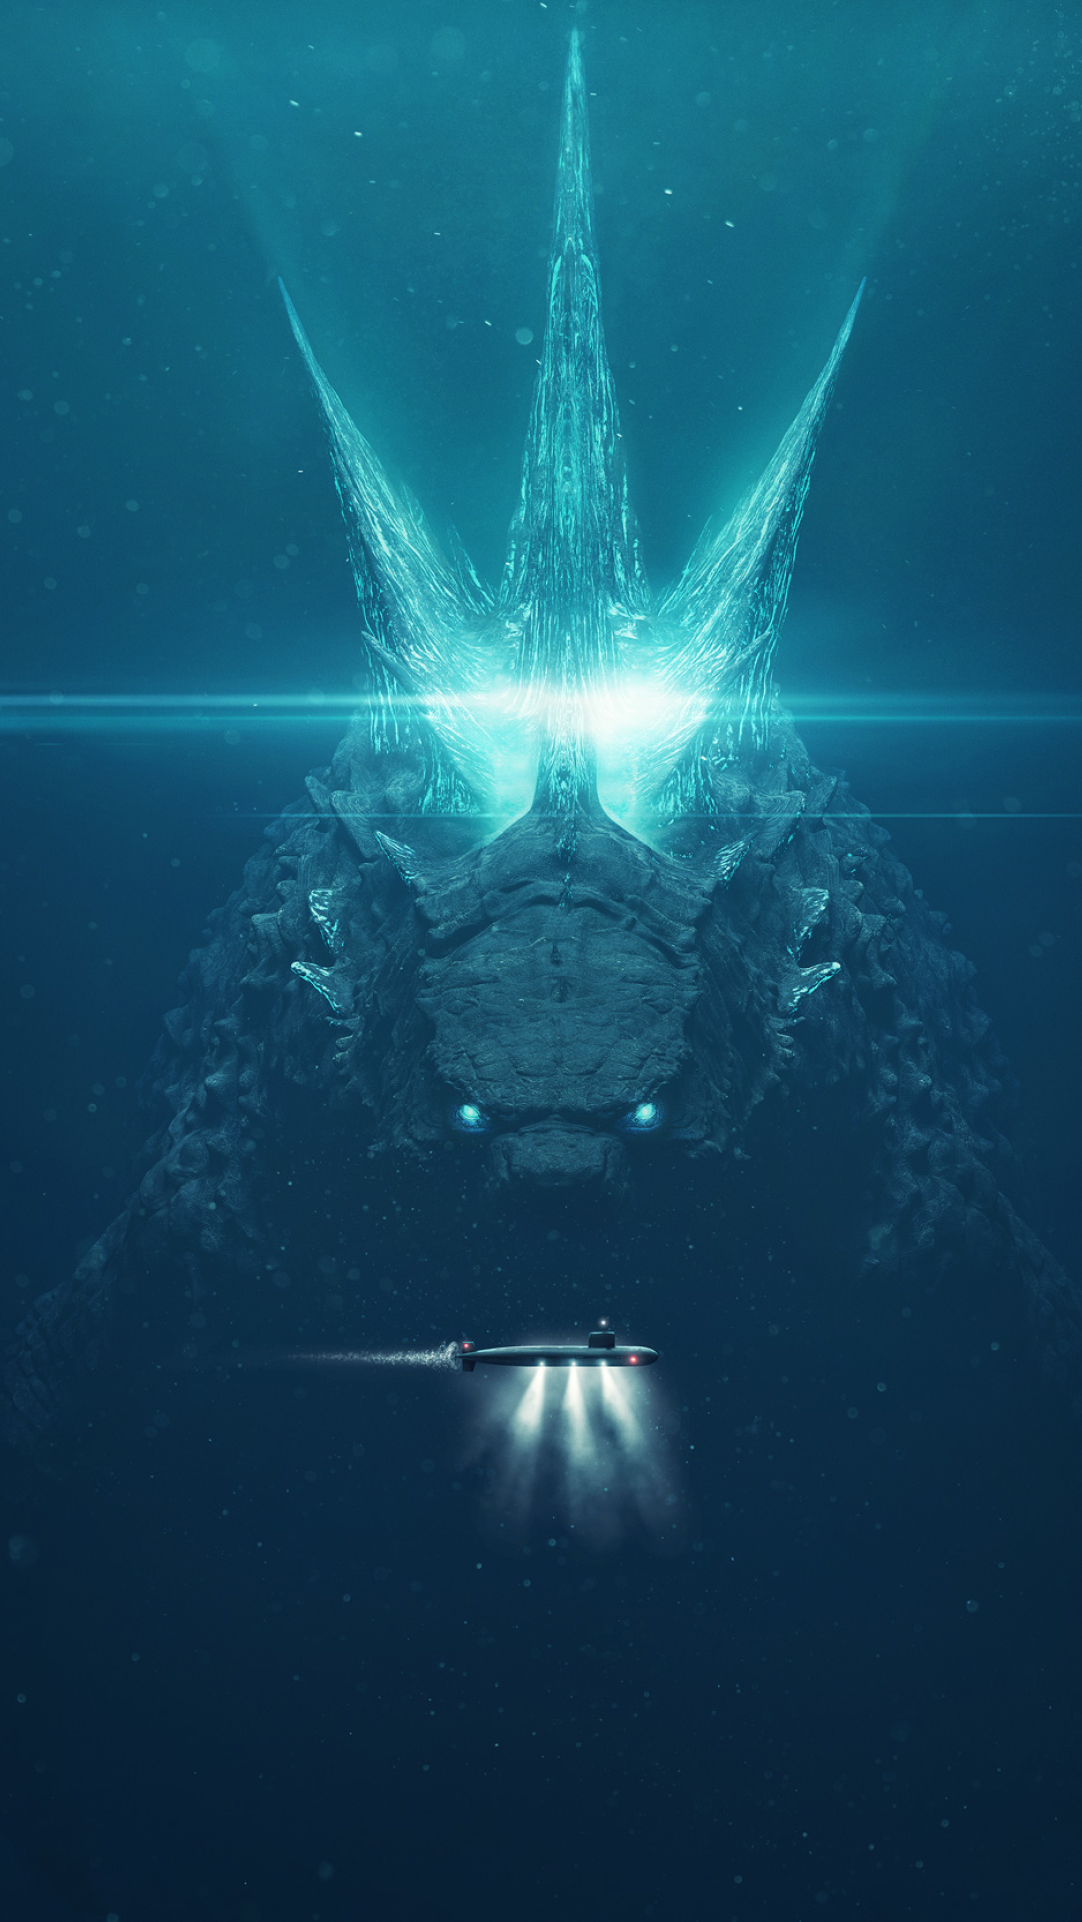 Godzilla King Of The Monsters 2019 Poster Wallpaper Hd Movies 4k Wallpapers Images Photos And Background